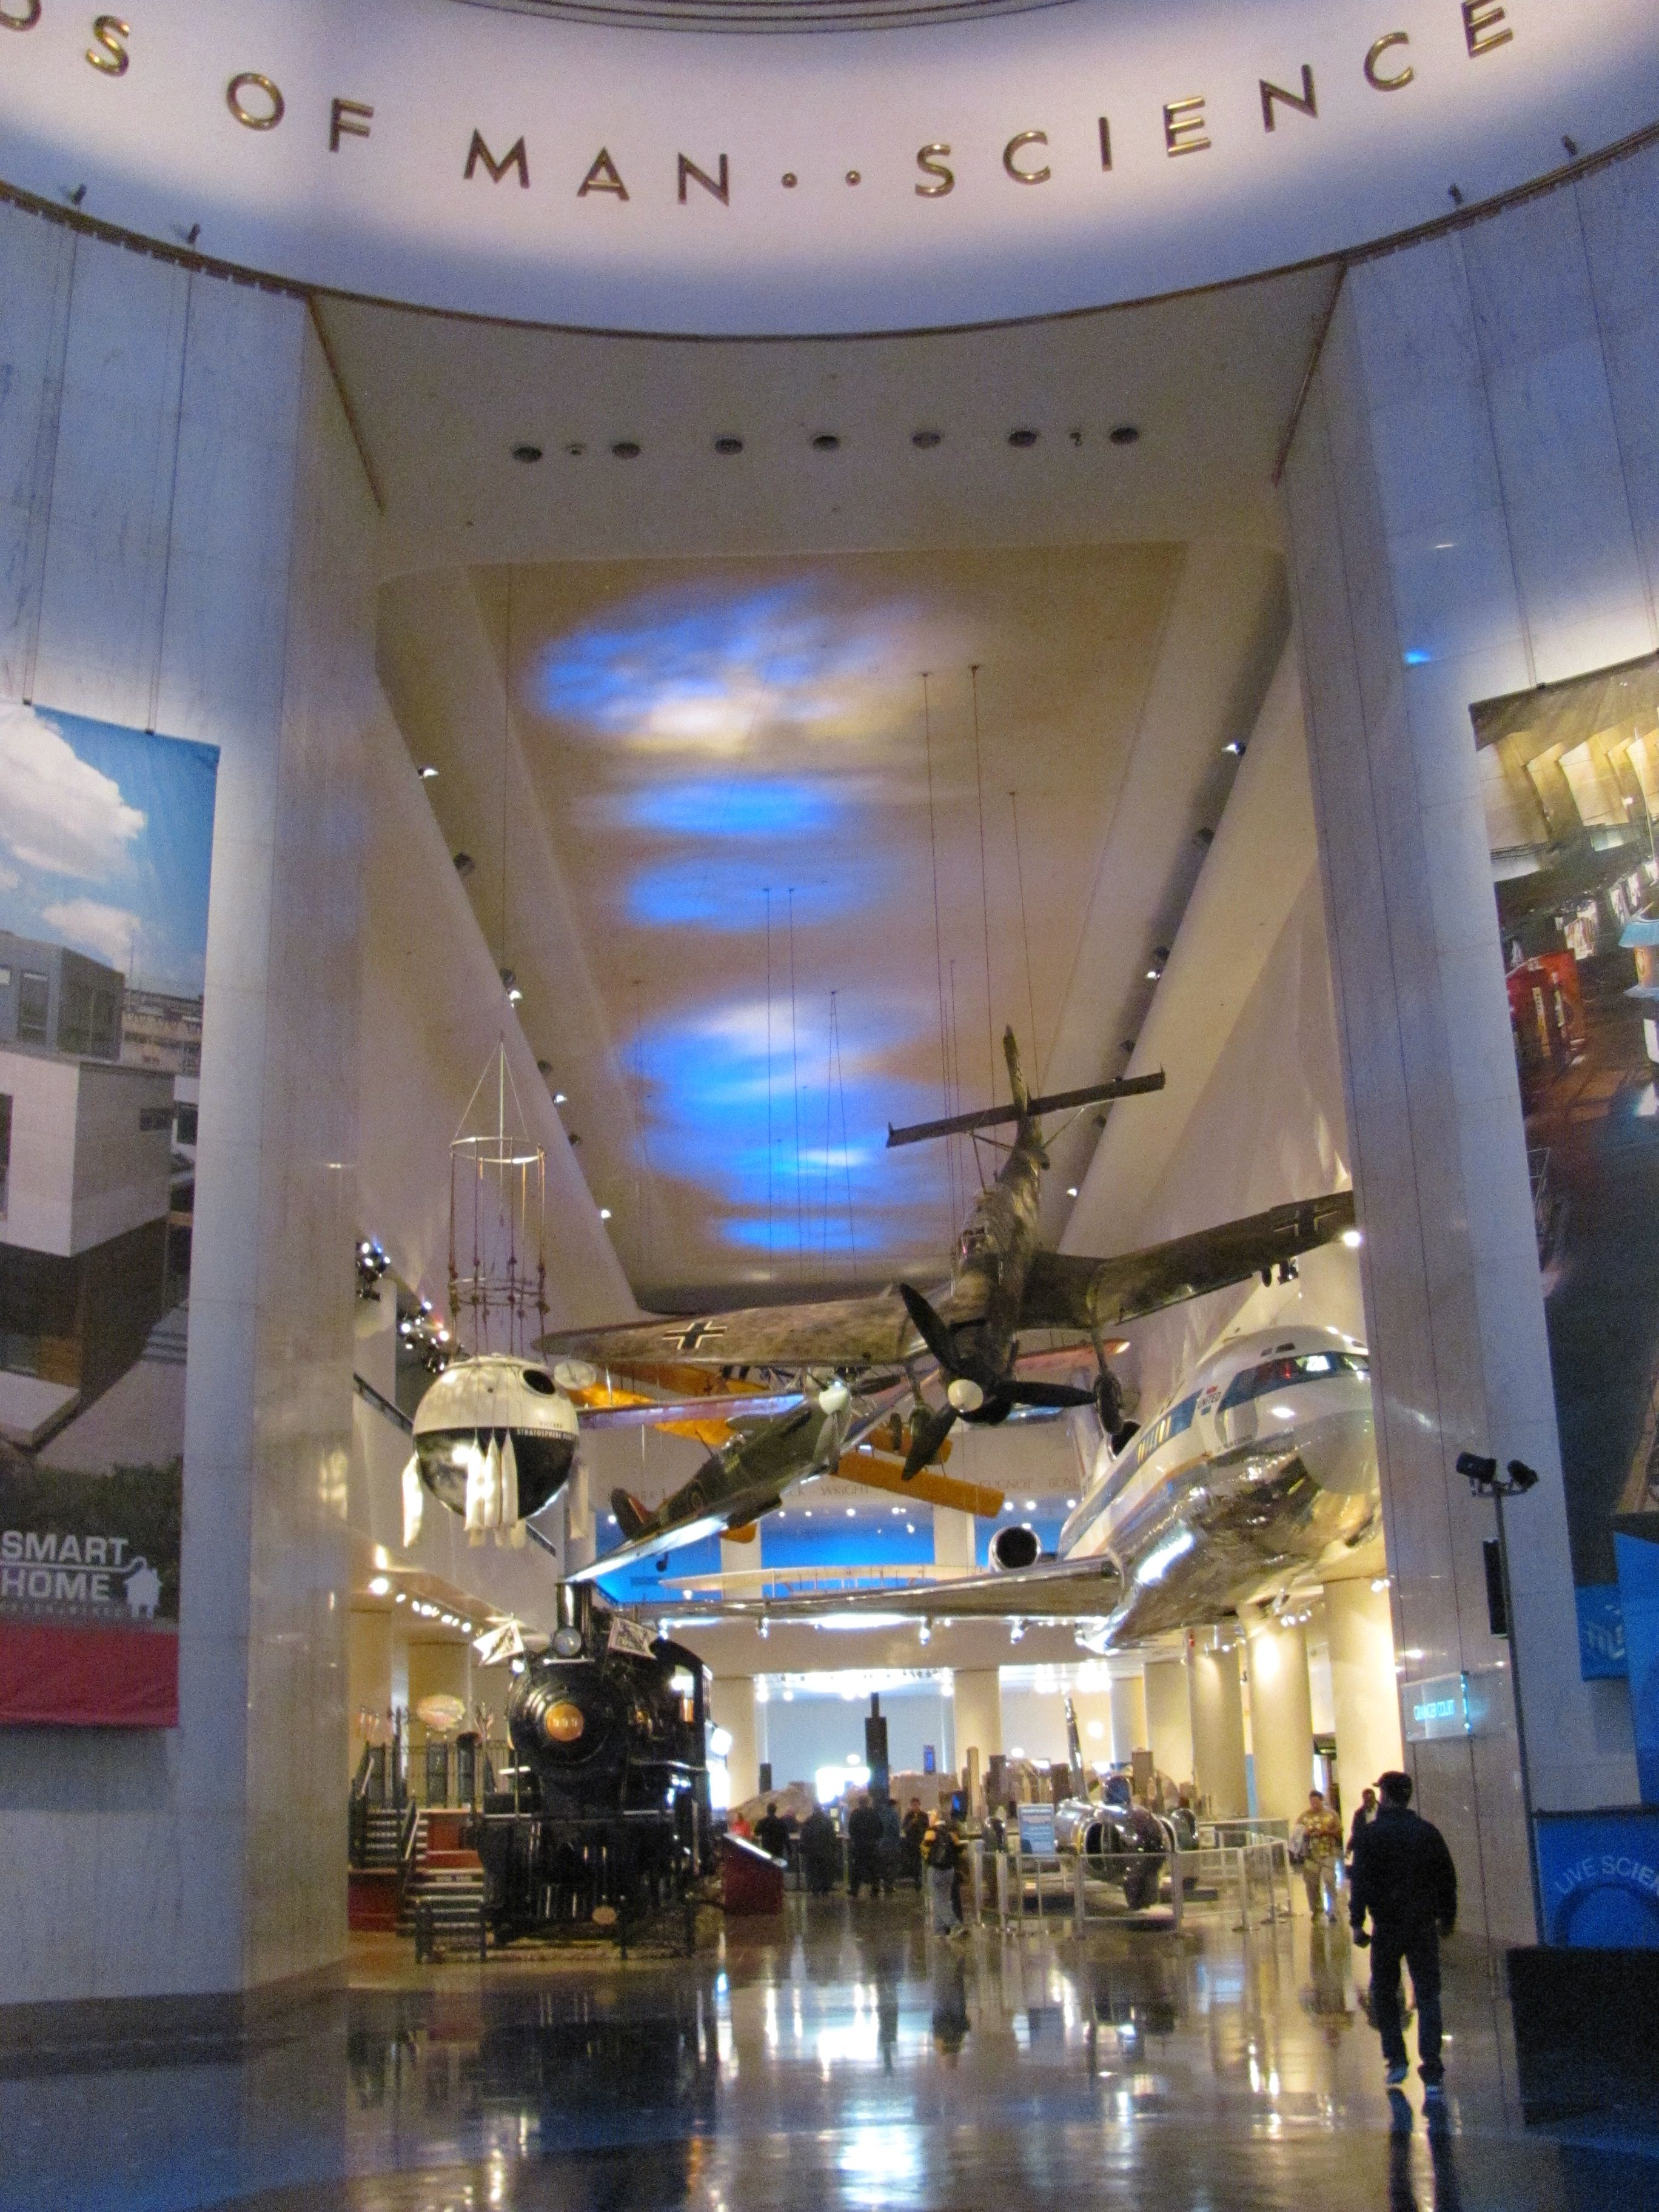 museum of science and industry 934 photos cinema 2017